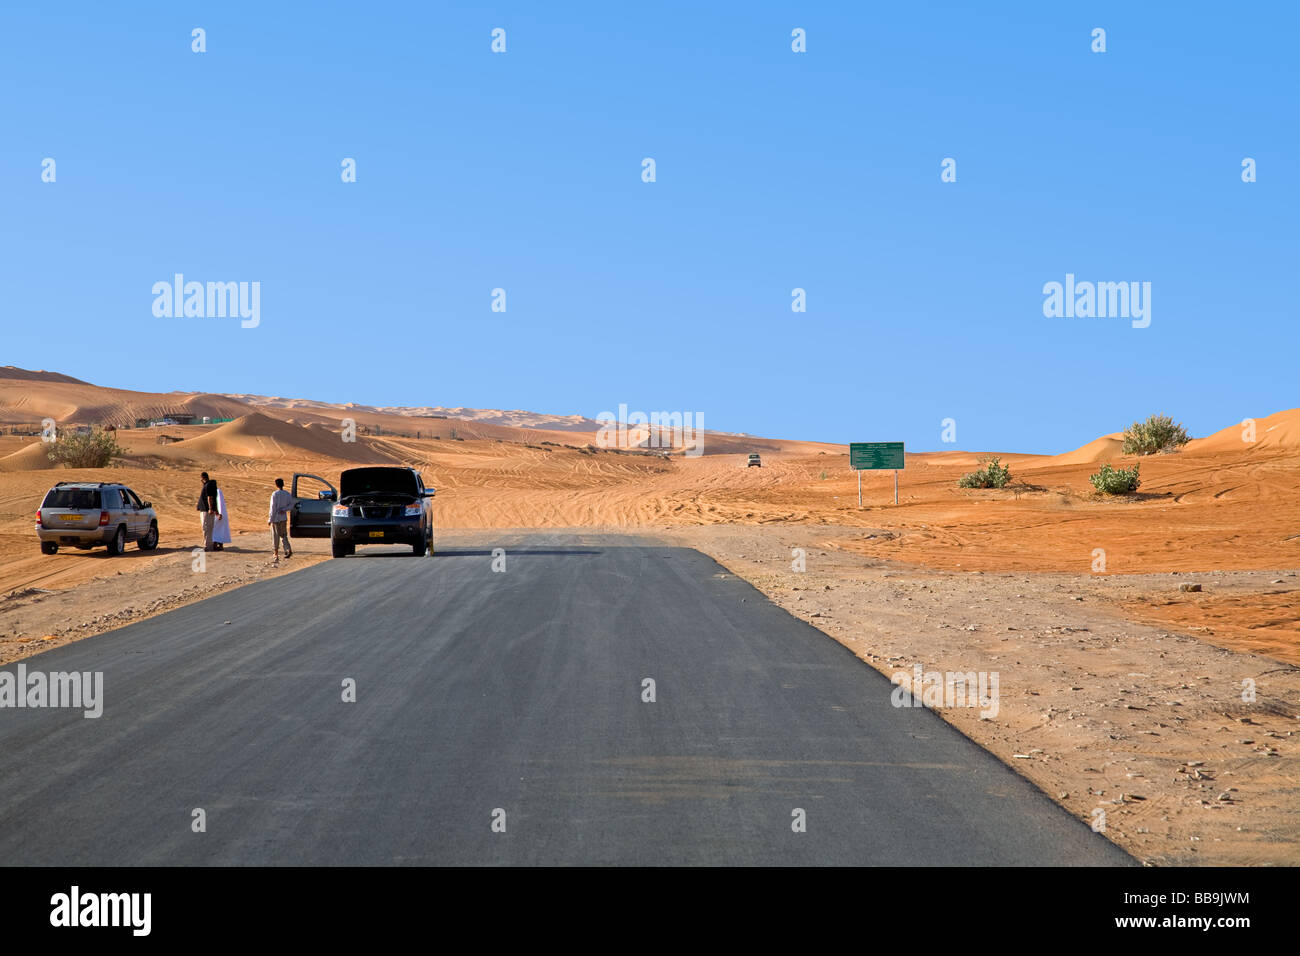 End of the asphaltic Road in Al Mintarib, entrance to the sandtrack crossing the Wahiba Sharquiya Sands - Stock Image